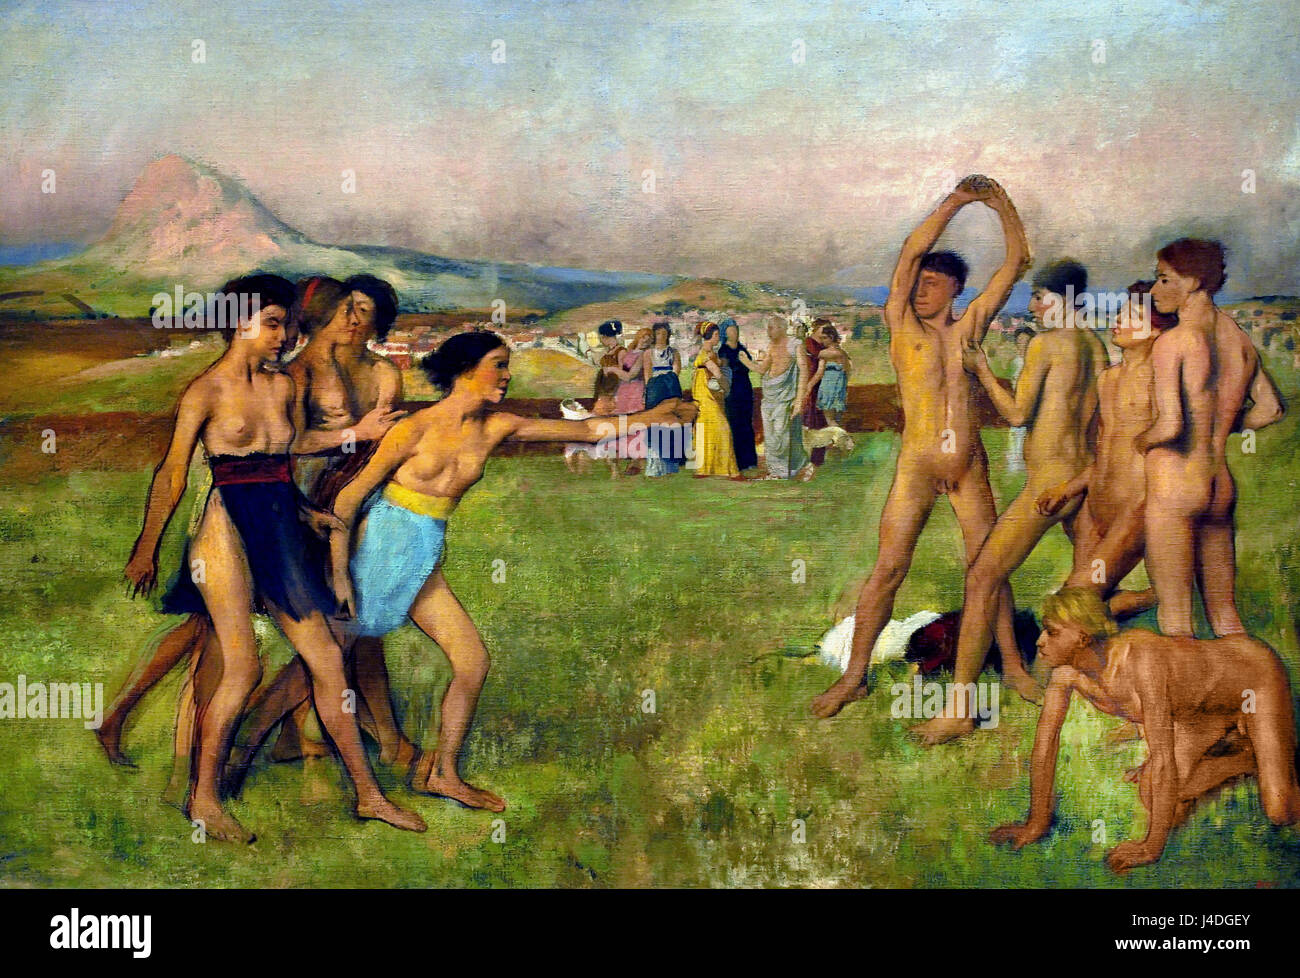 Young Spartans Exercising 1860 by  Hilaire Germain Edgar Degas 1834-1917 France French ( Plutarch writes of Lycurgus, - Stock Image